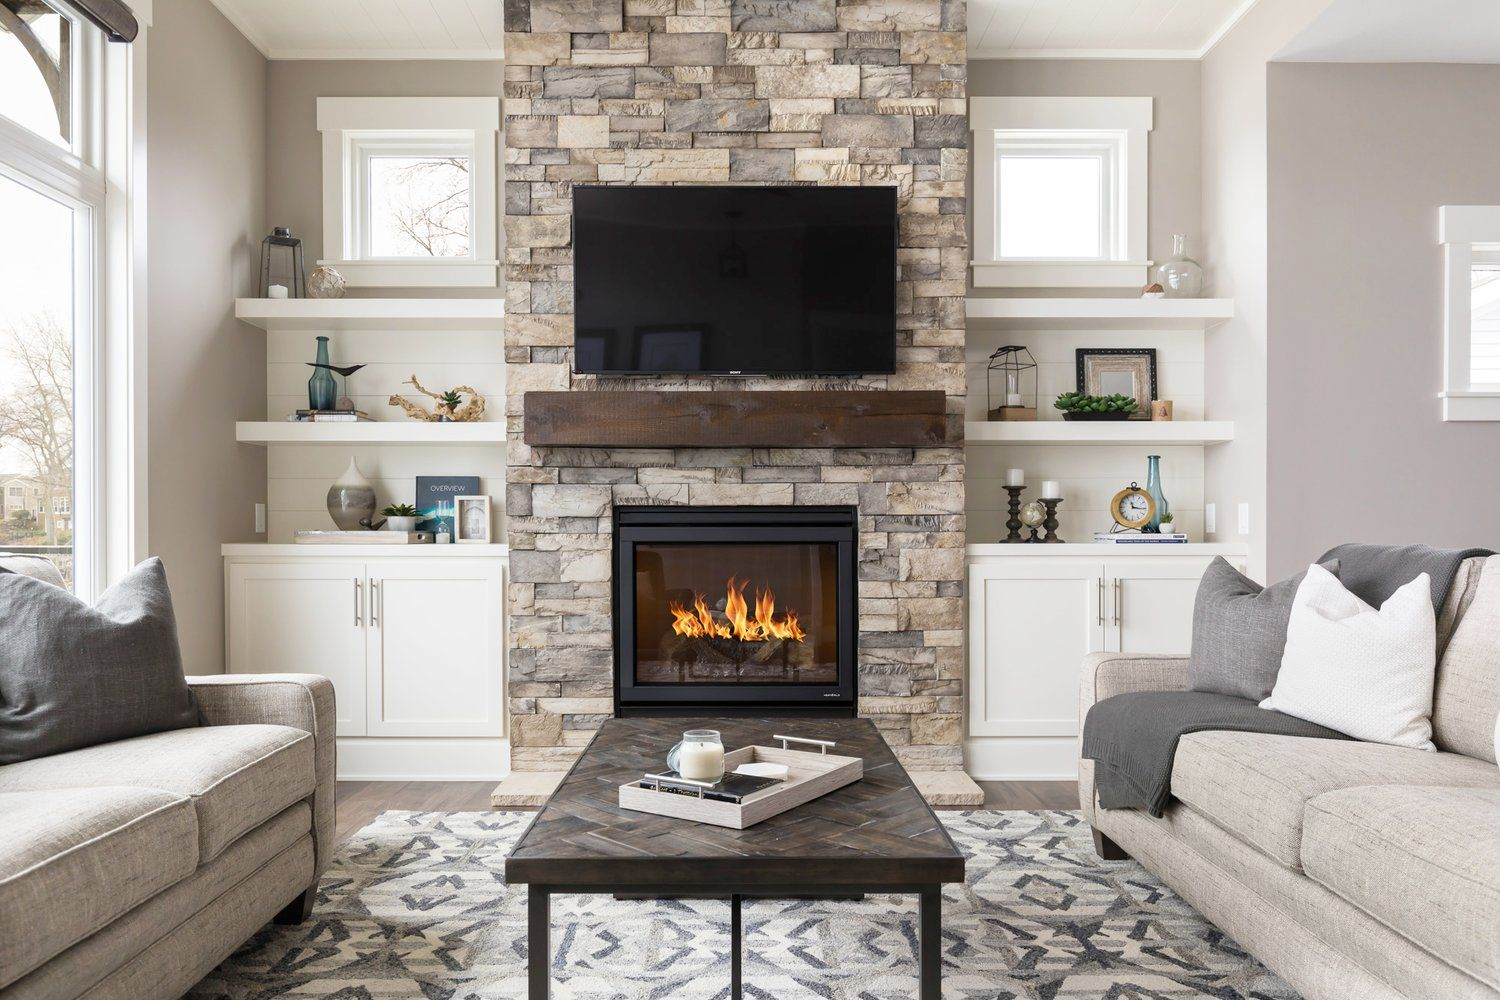 Modern Living Room Fireplace Walls Part - 19: Courtesy of Michaela Noelle Designs